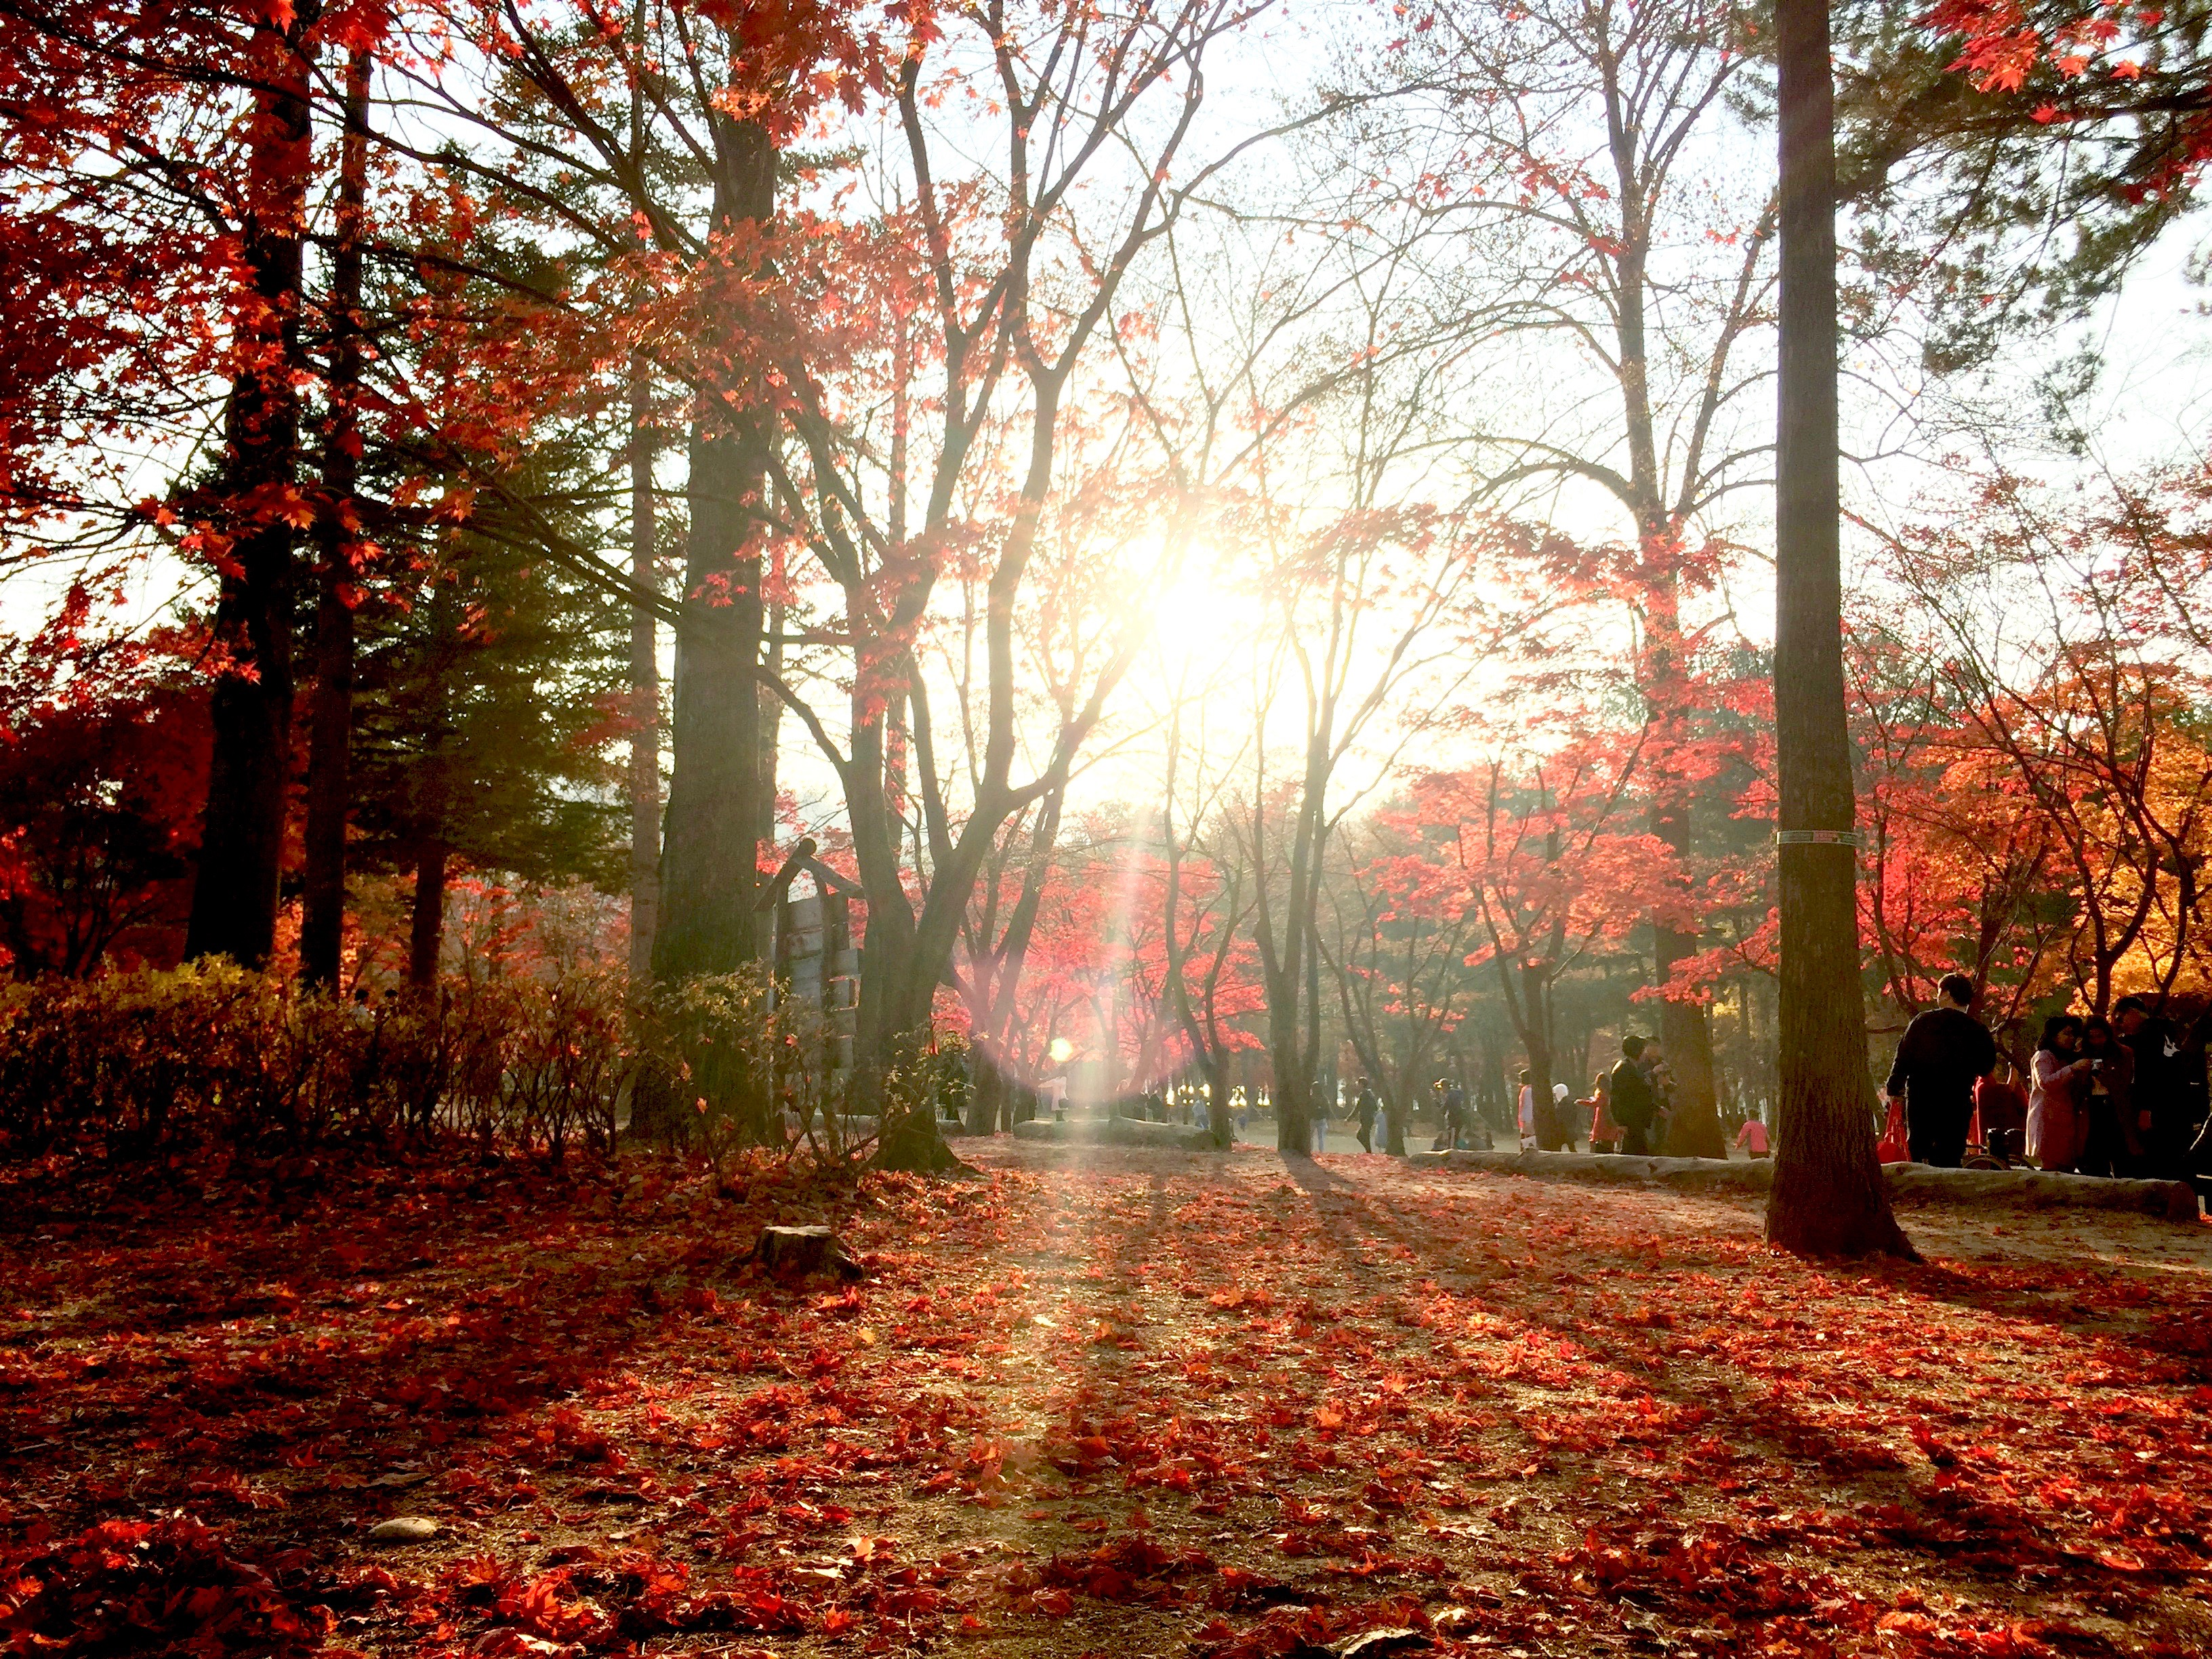 Autumn foliage in Nami Island (남이섬)